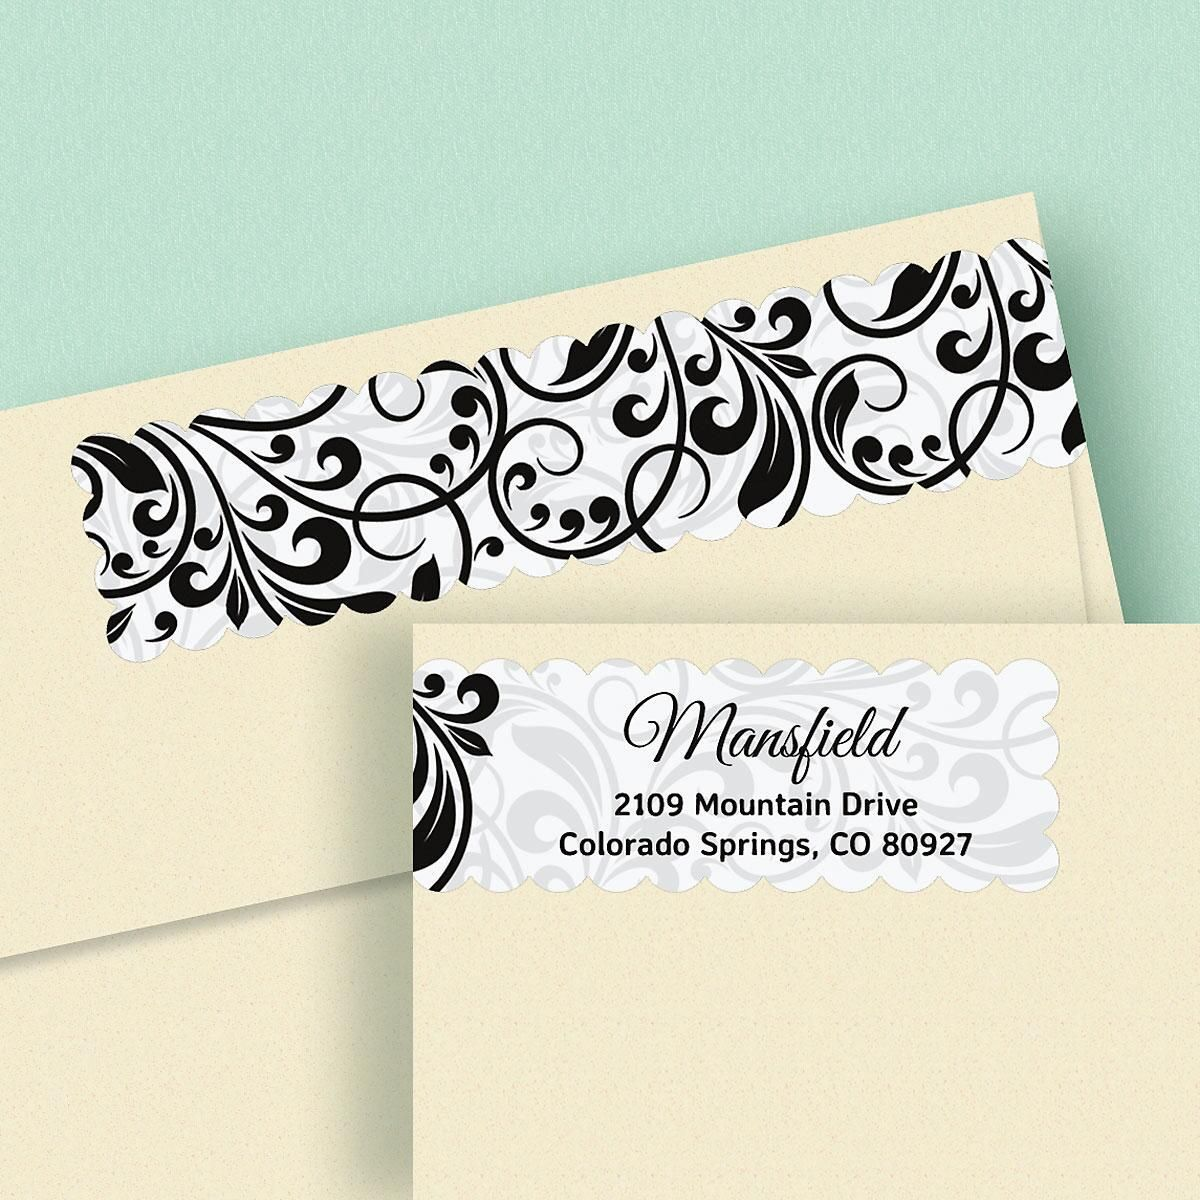 Refined Connect Wrap Around Diecut Address Labels